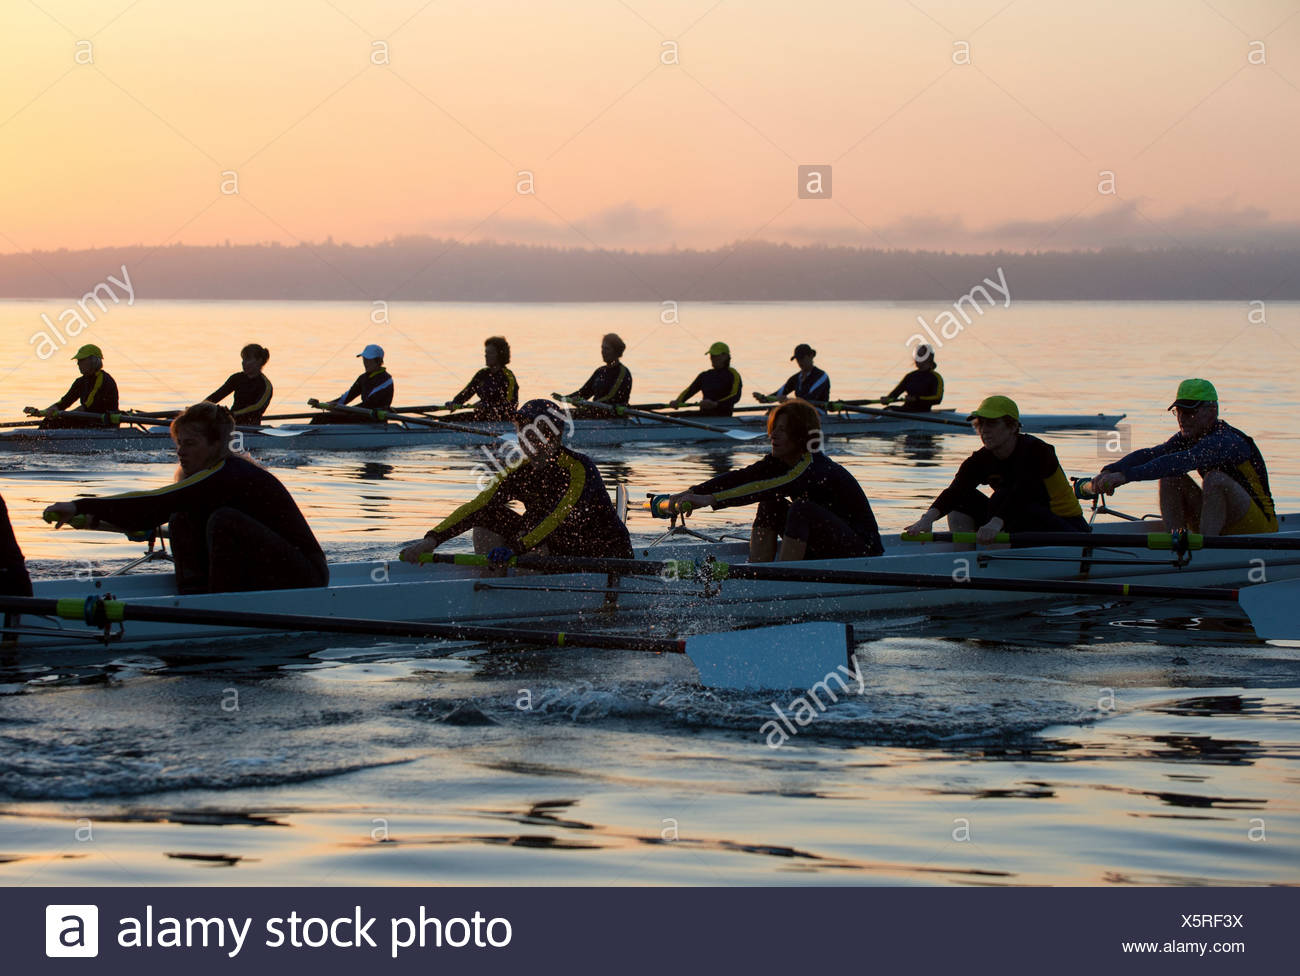 Fourteen people rowing at sunset - Stock Image